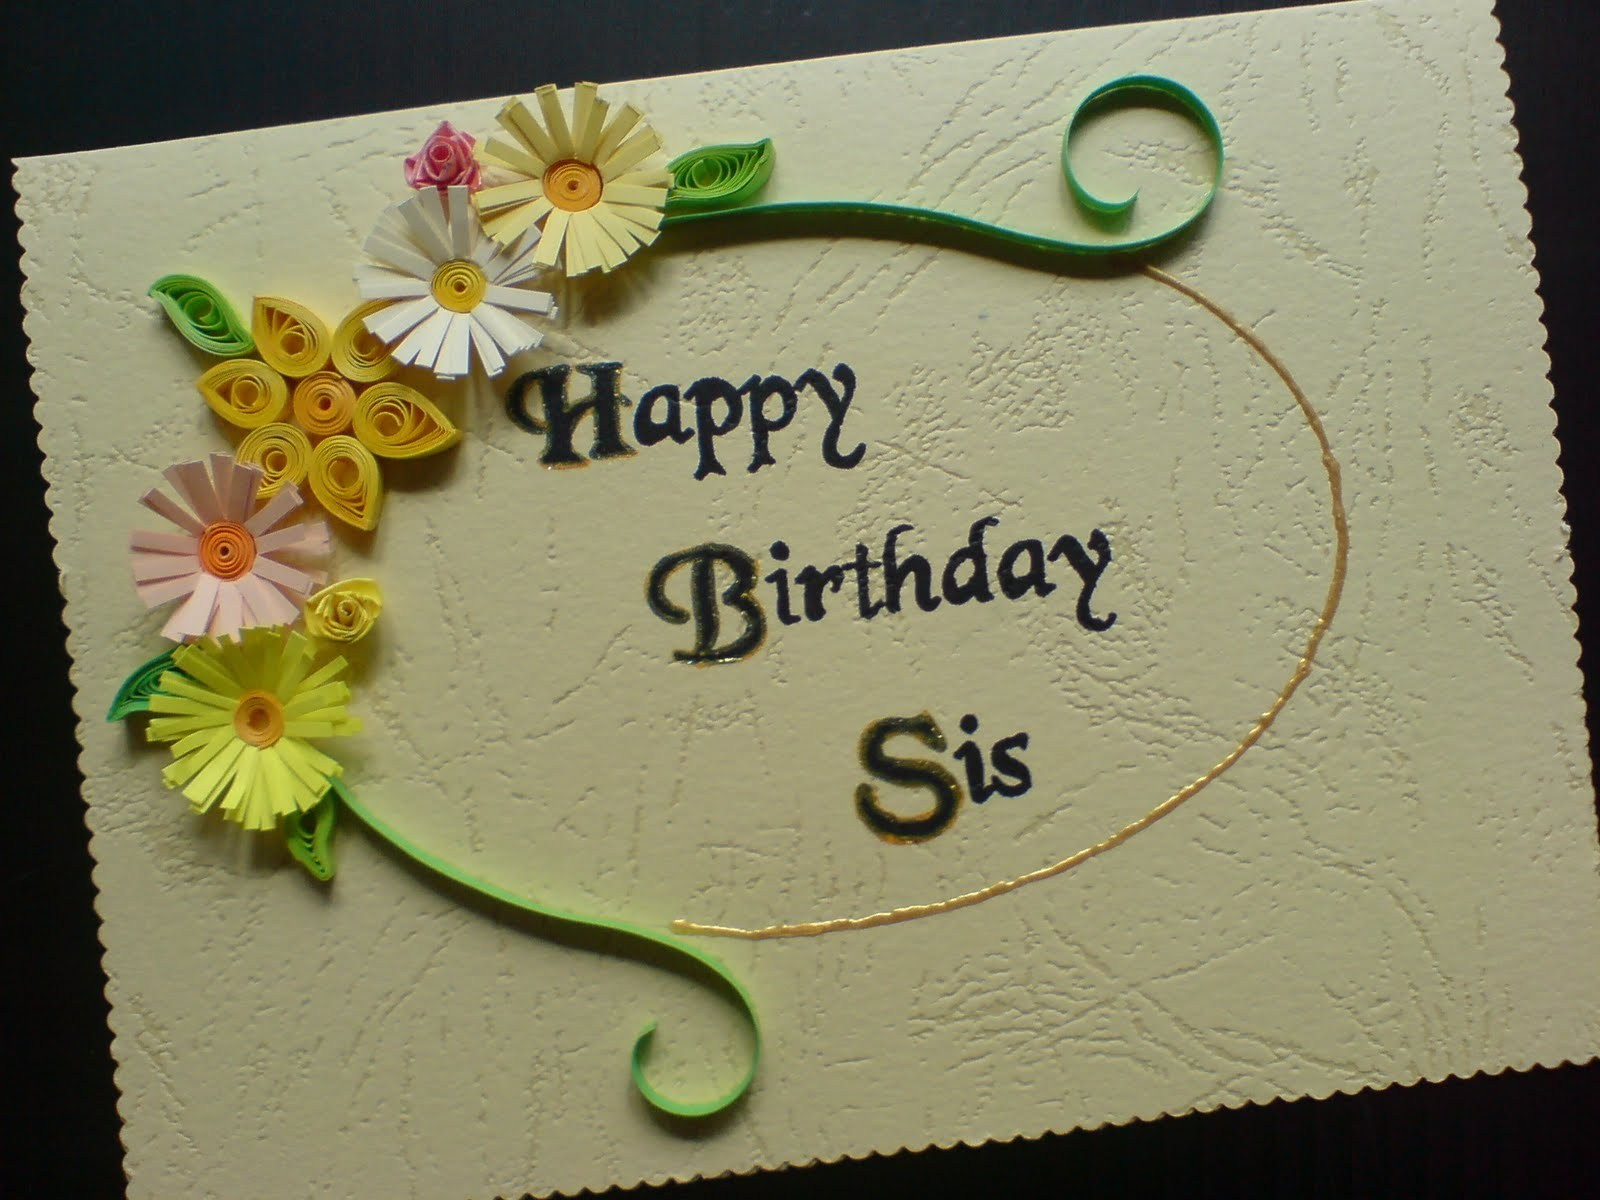 Happy Birthday to my Sister Love Relationship – Happy Birthday Greetings Sister